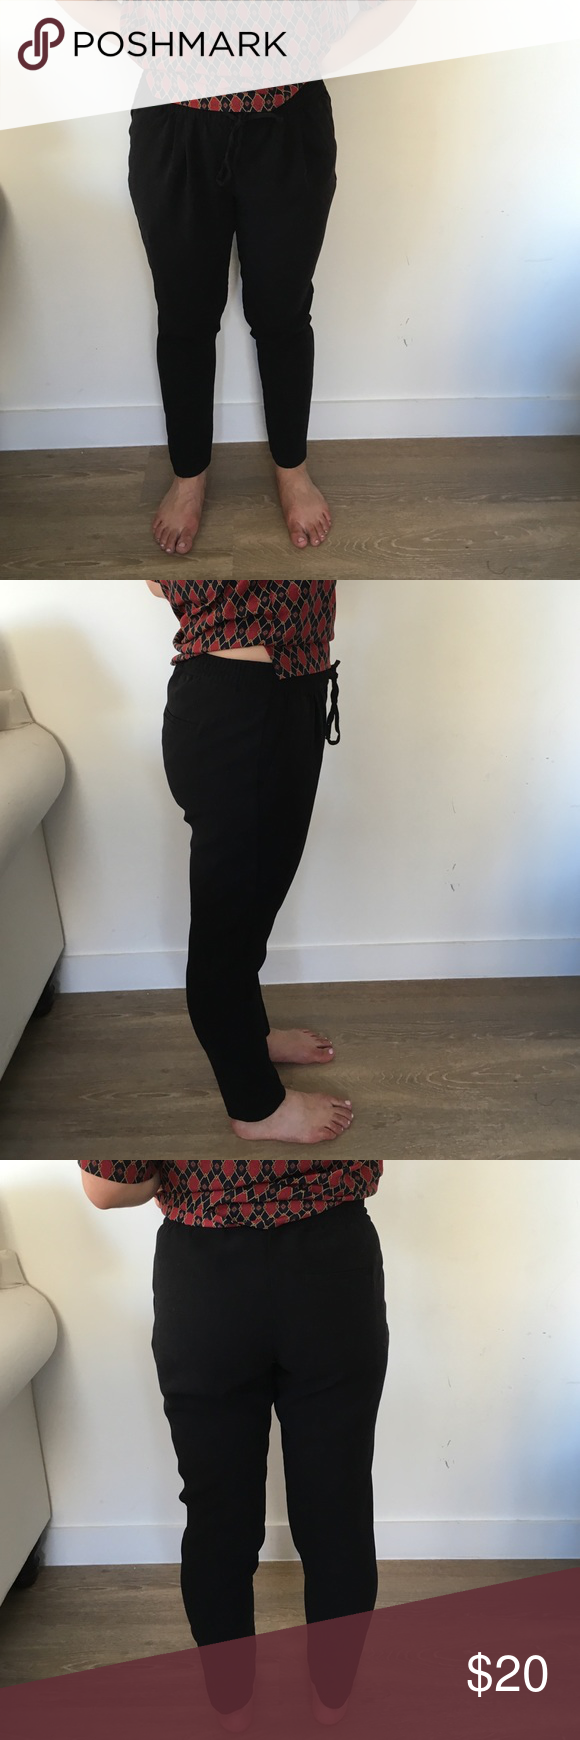 H & m black trousers Slouchy H&M Pants Trousers